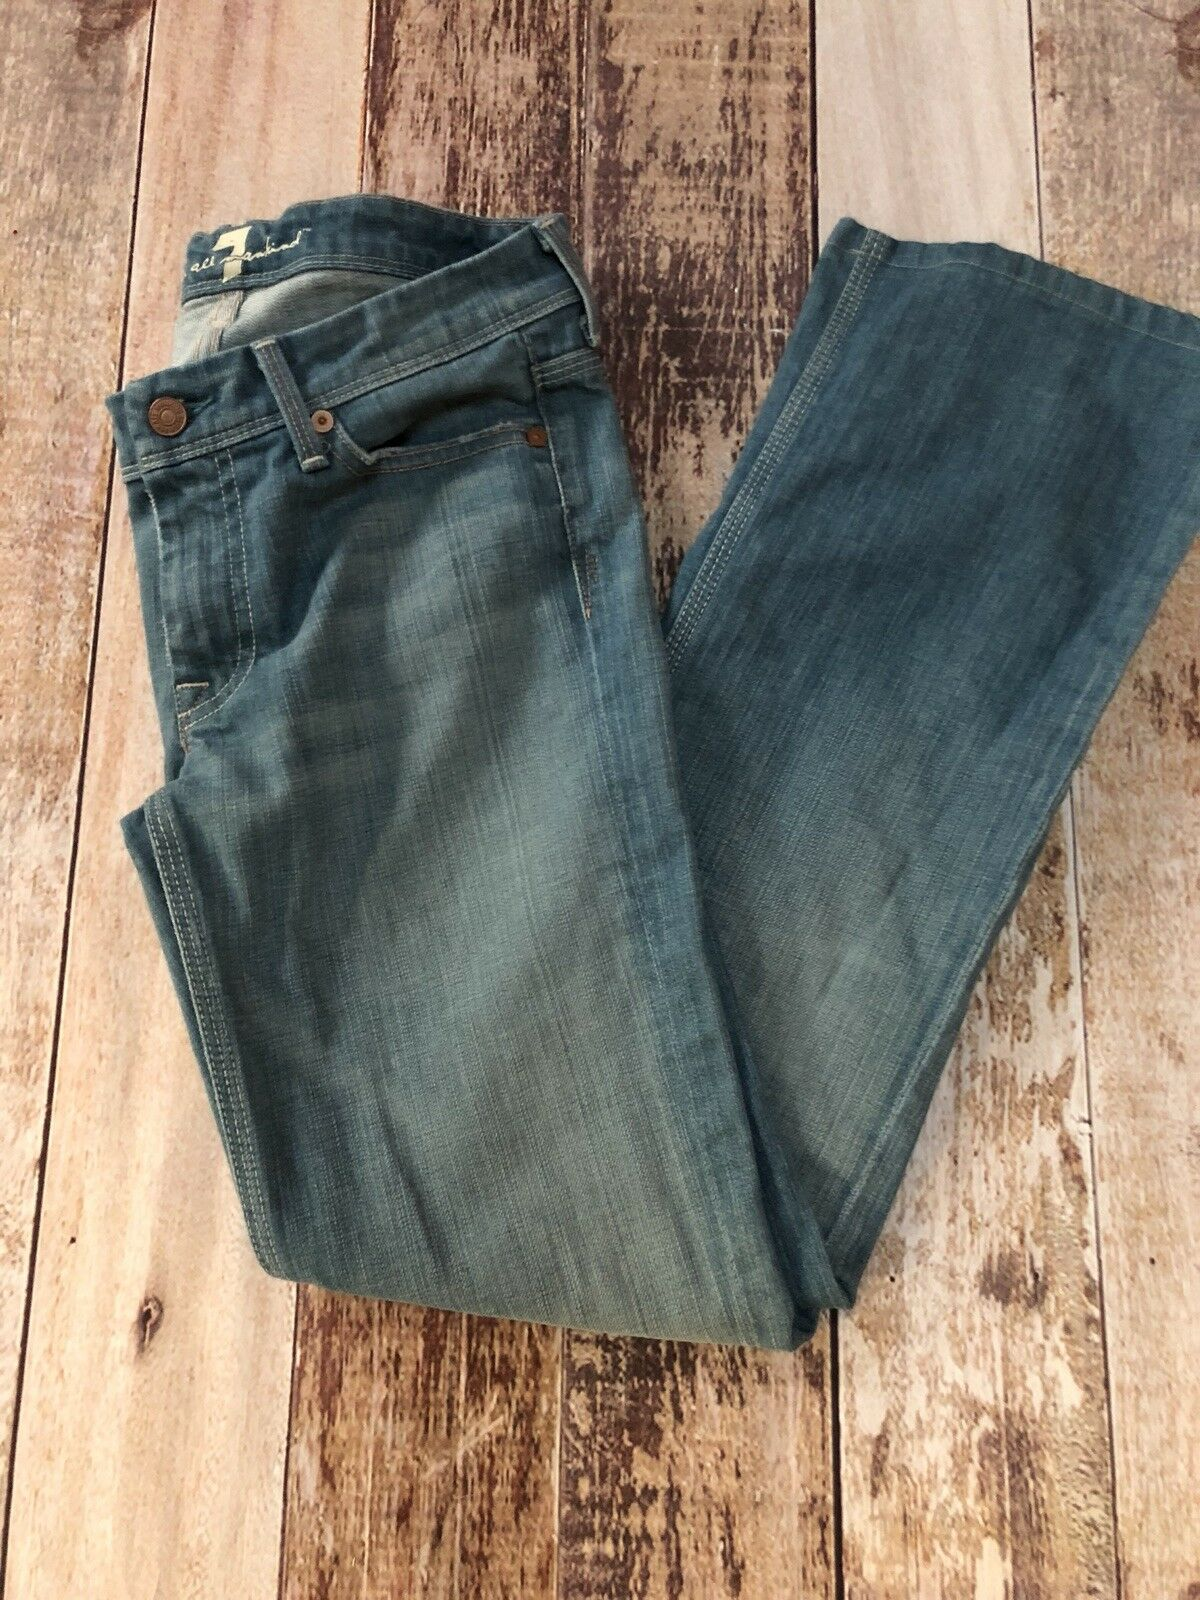 7FAM 7 For All Mankind Flynt Light Wash Pink Stitch Jeans 27